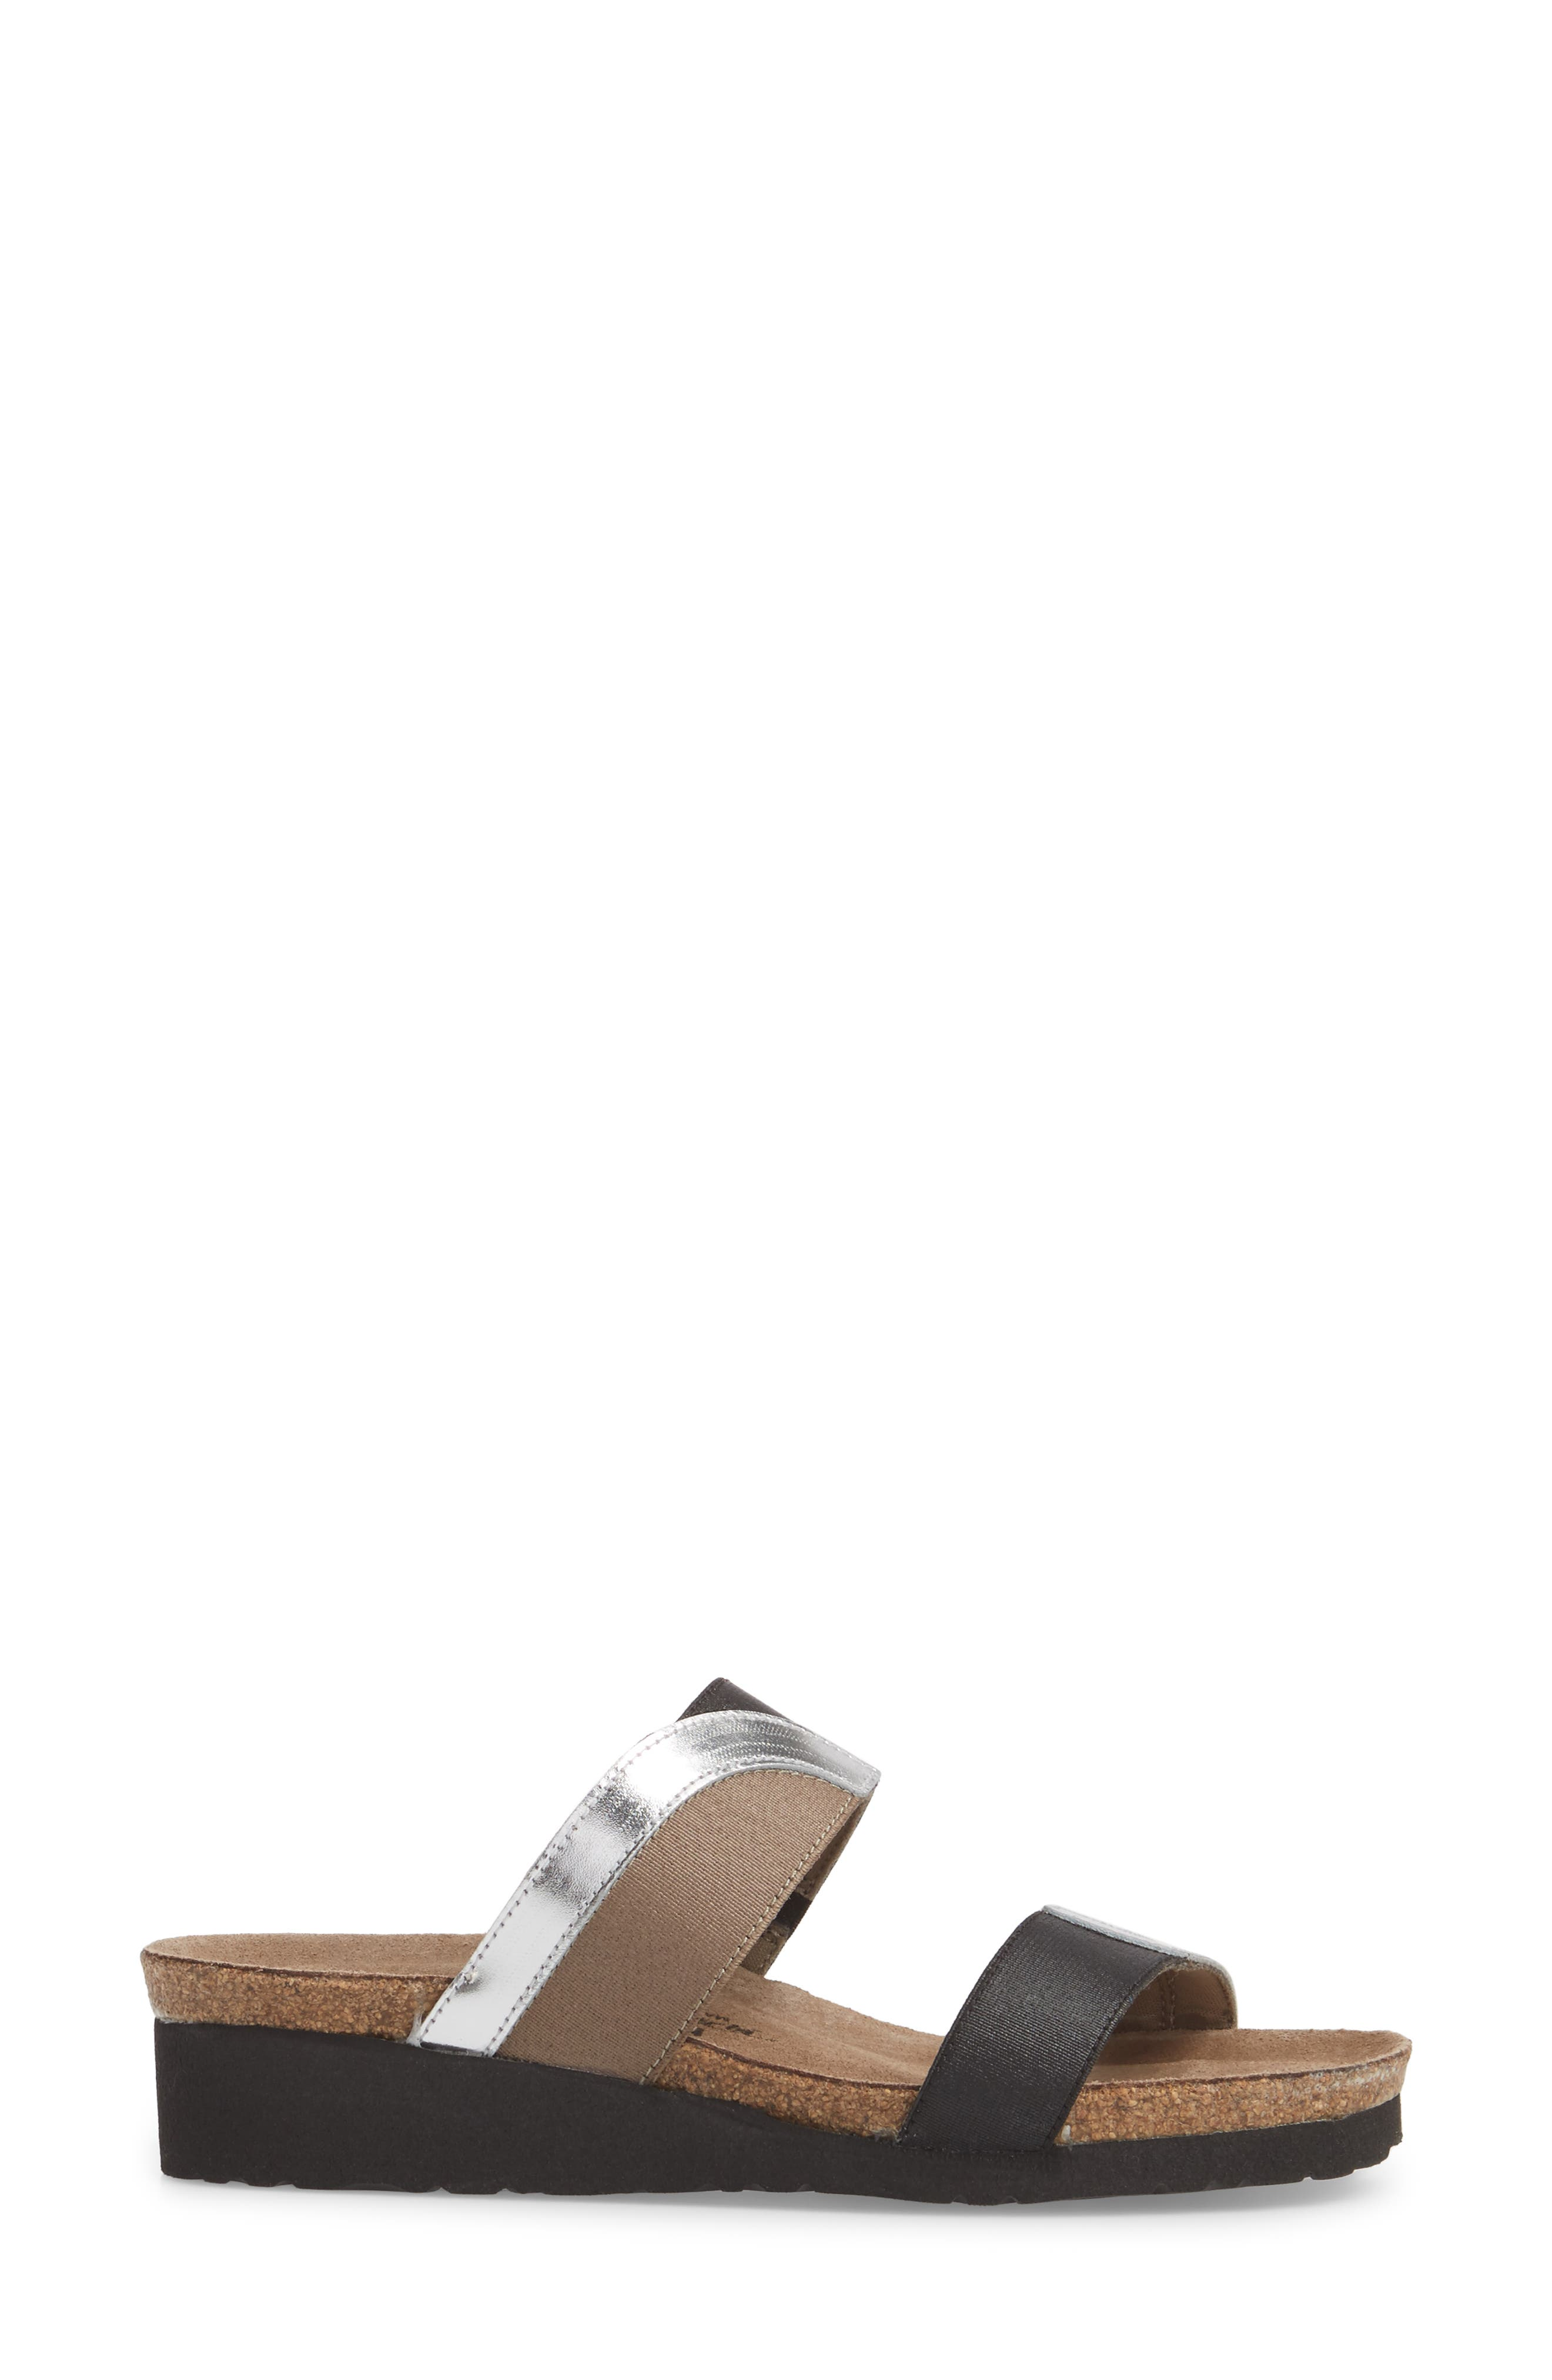 Frankie Slide Sandal,                             Alternate thumbnail 3, color,                             SILVER MIRROR LEATHER